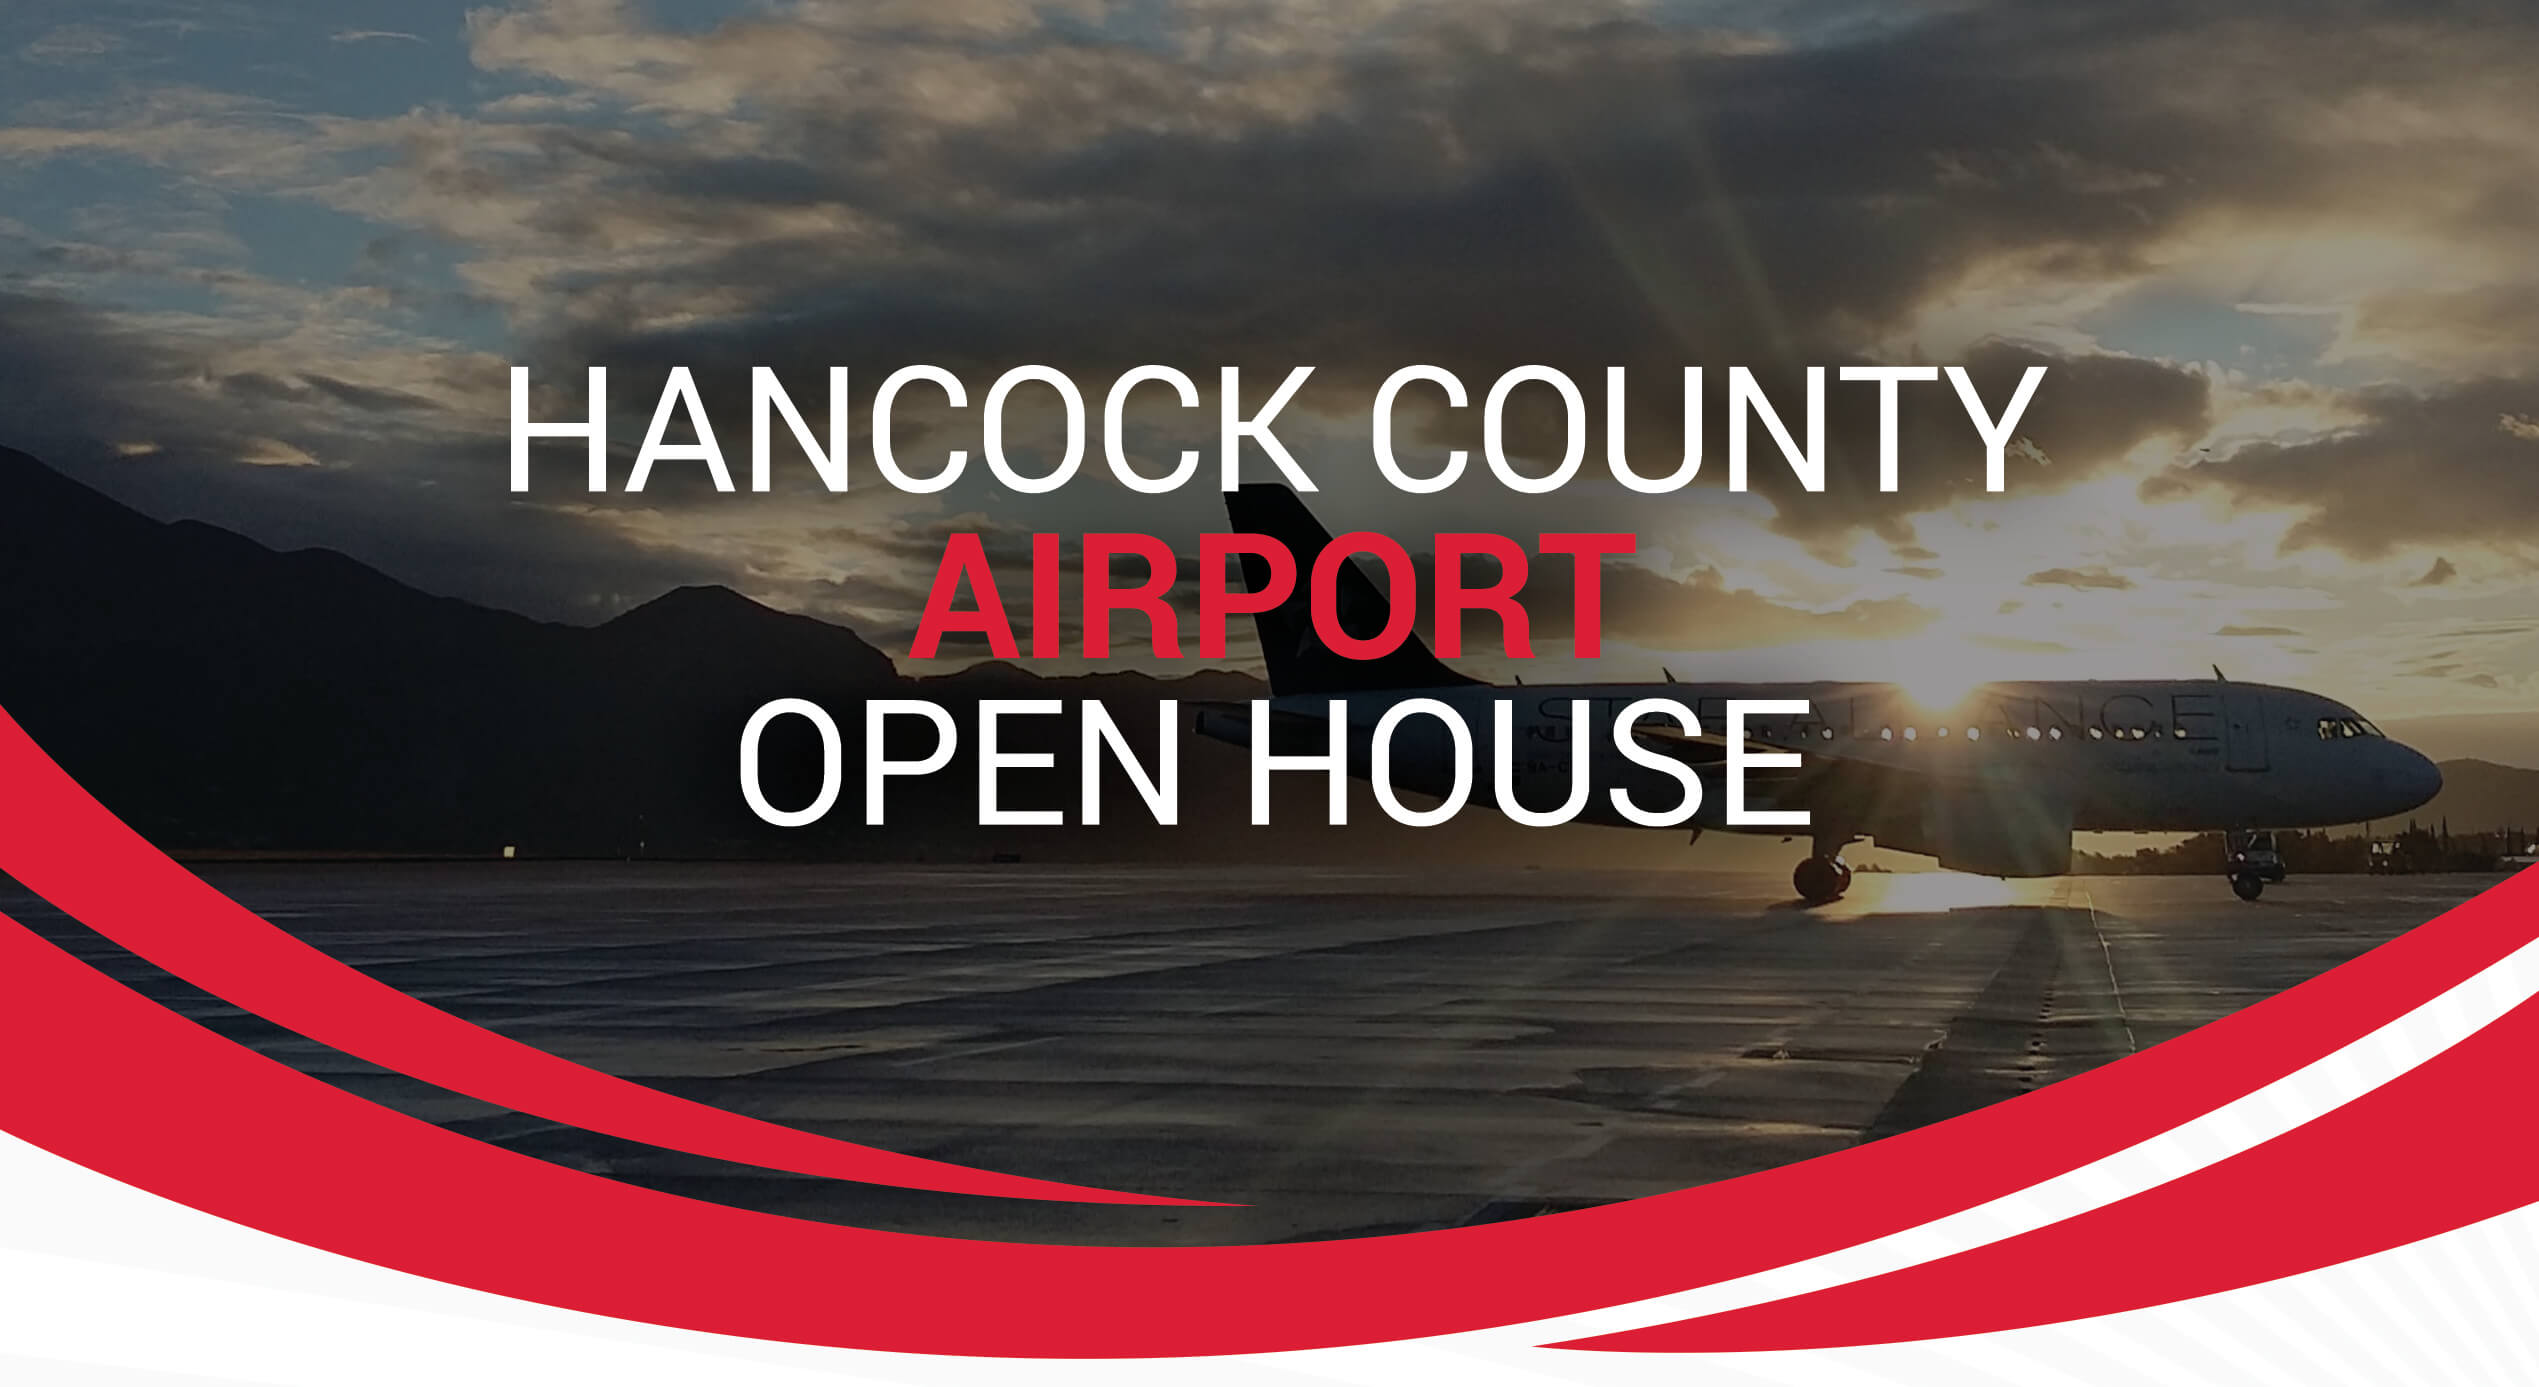 Feature: http://www.owensbororadio.com/hancock-county-airport-open-house/